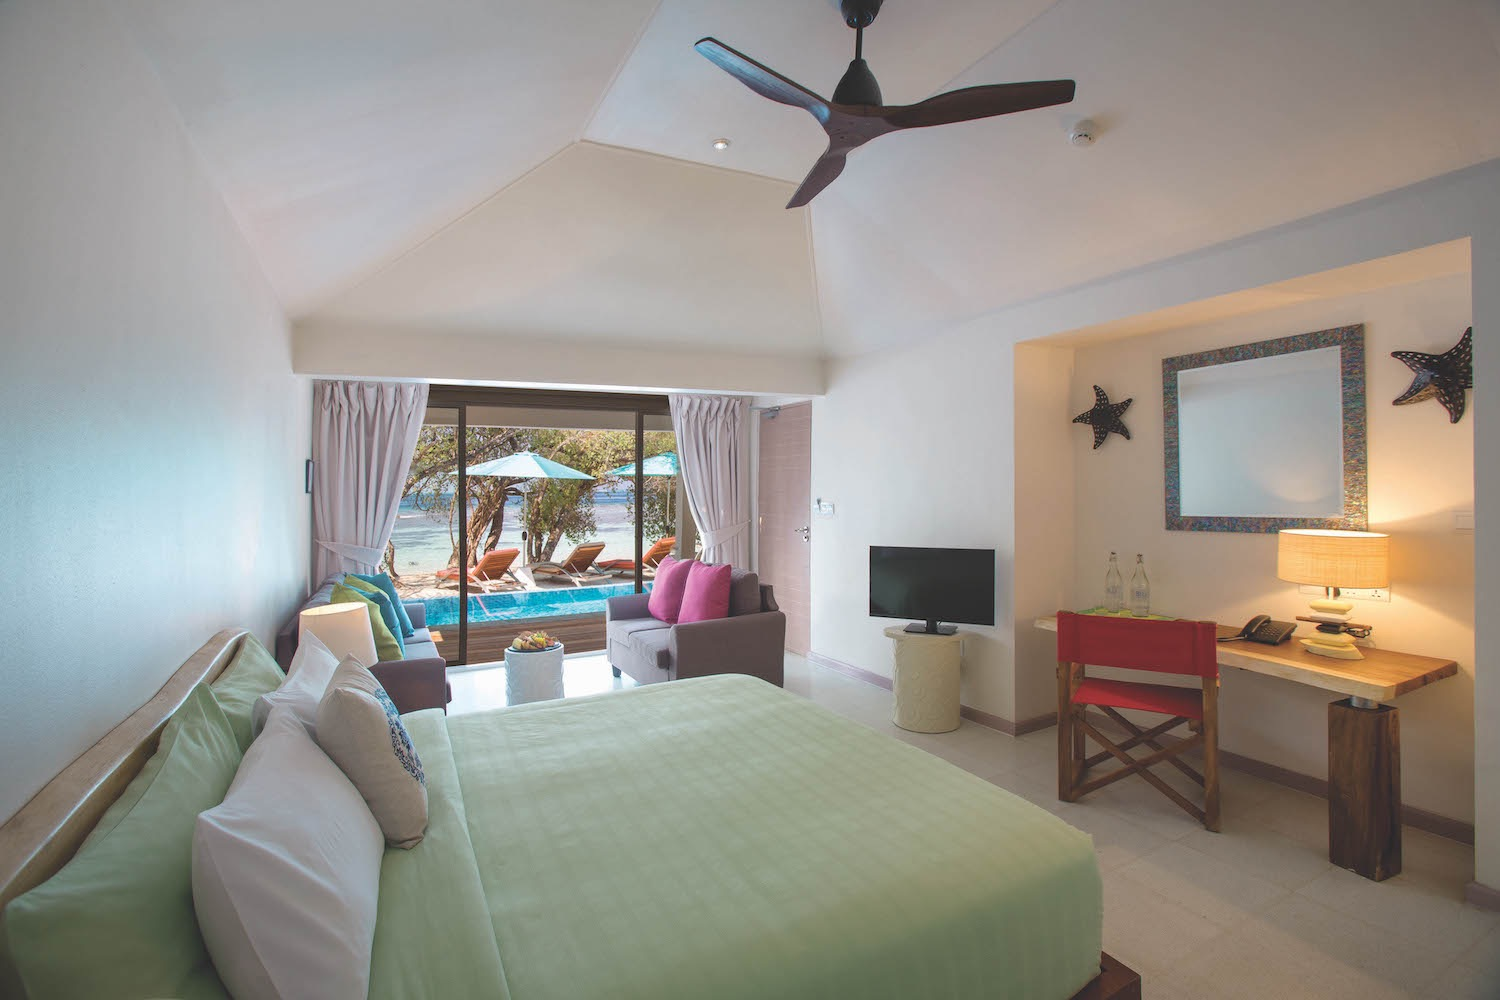 maldives-oblu-by-atmosphere-at-helengeli-2-bedroom-beach-pool-suite-master-holiday-honeymoon-vacation-invite-to-paradise (Reece Turvill's conflicted copy 2019-08-23).jpg